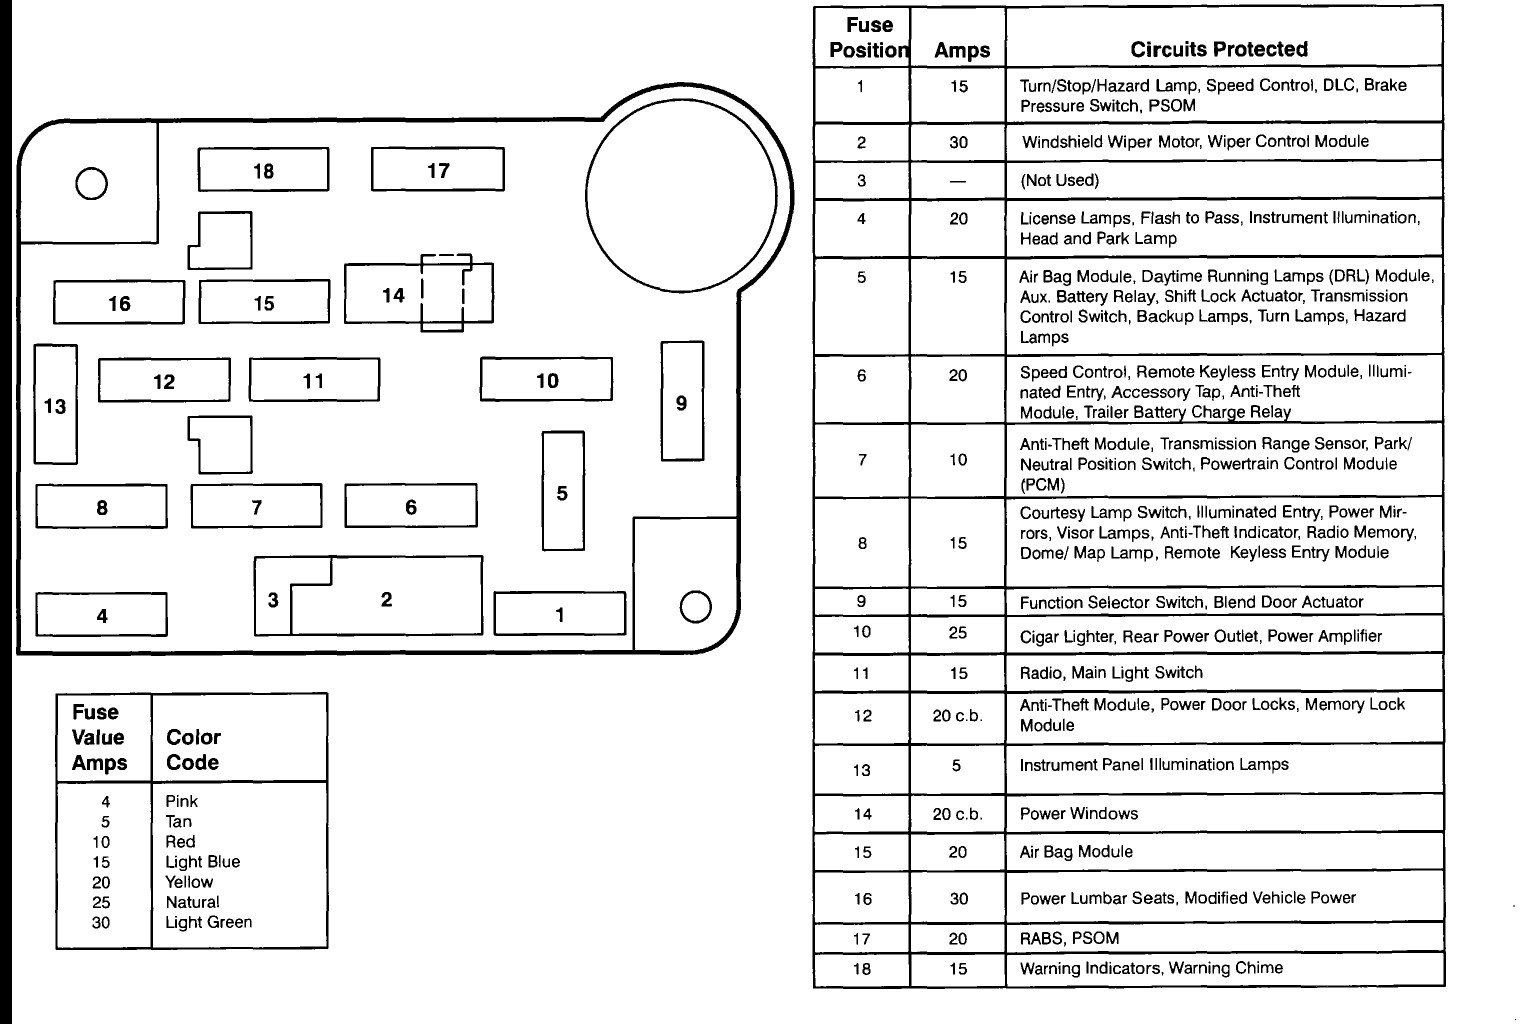 04 F150 Fuse Box Diagram / Fuse Box Diagram Ford F 150